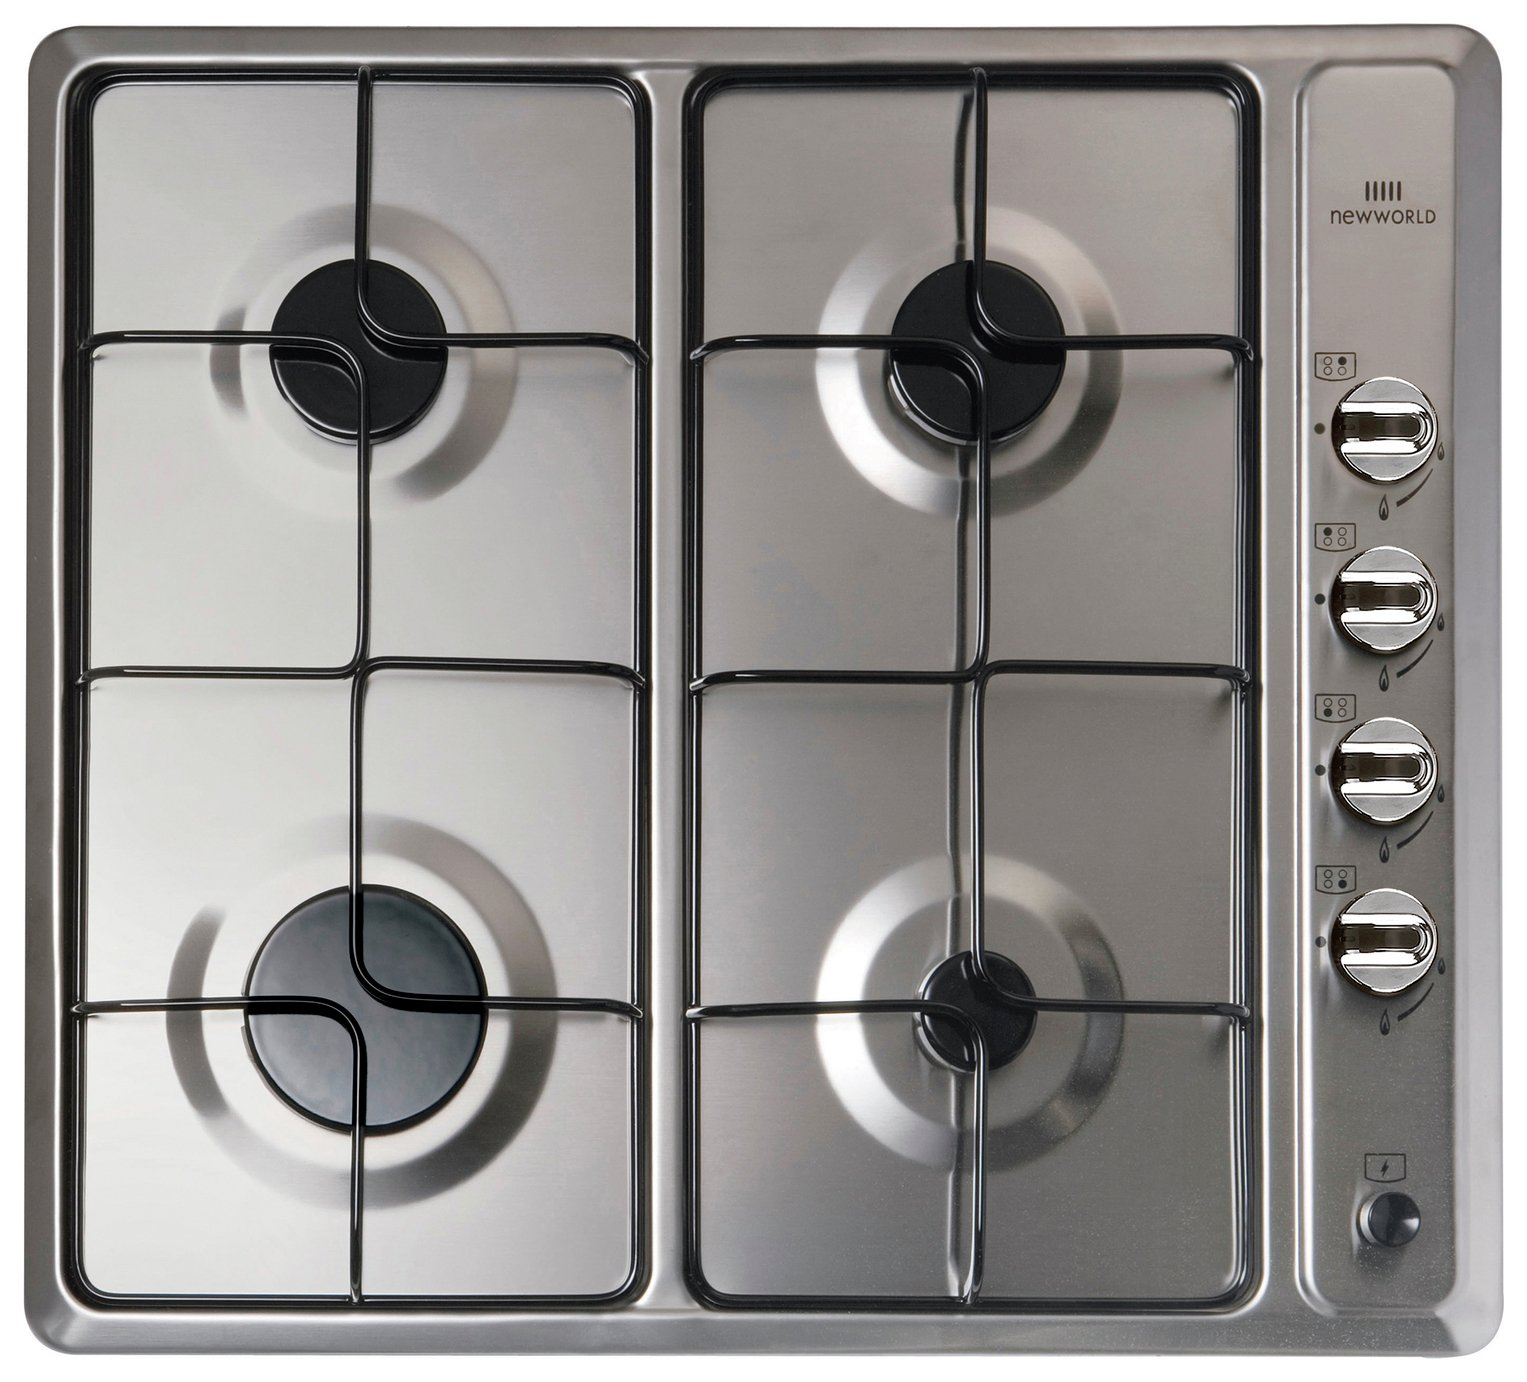 New World NWGHU601 Gas Hob - Stainless Steel